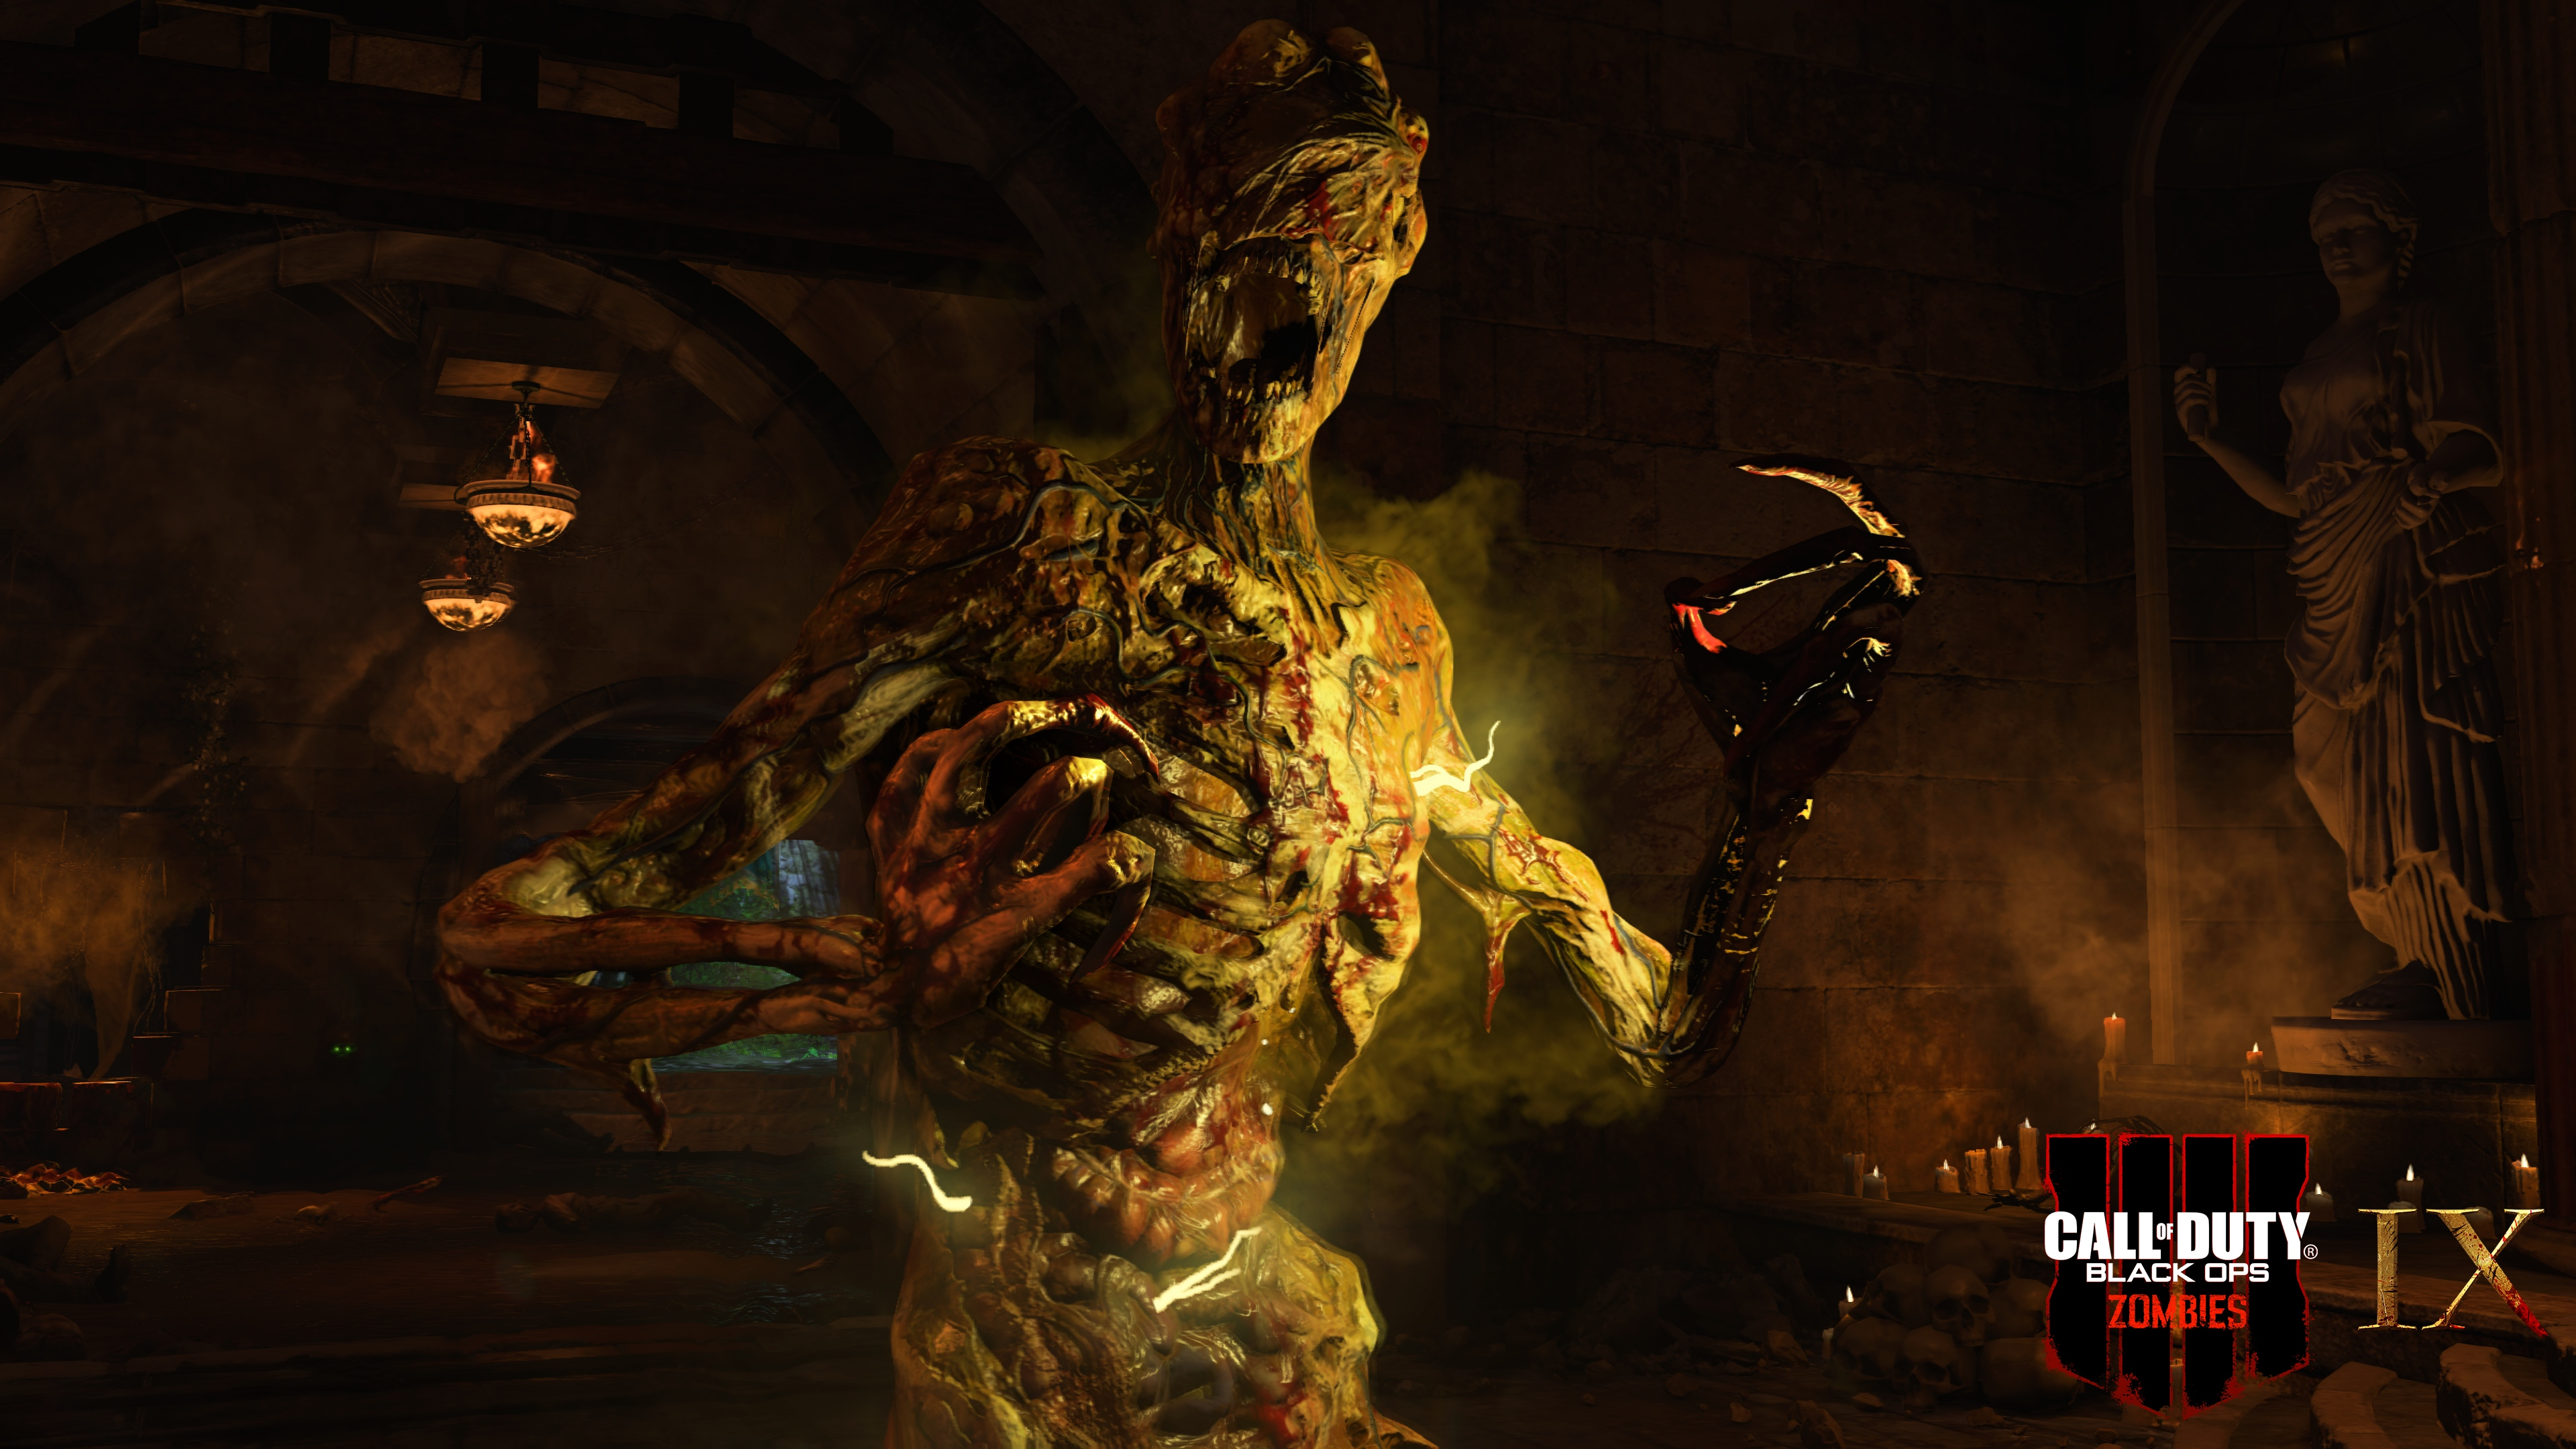 Black Ops 3 Zombies Wallpaper 3840x2160 Download Hd Wallpaper Wallpapertip